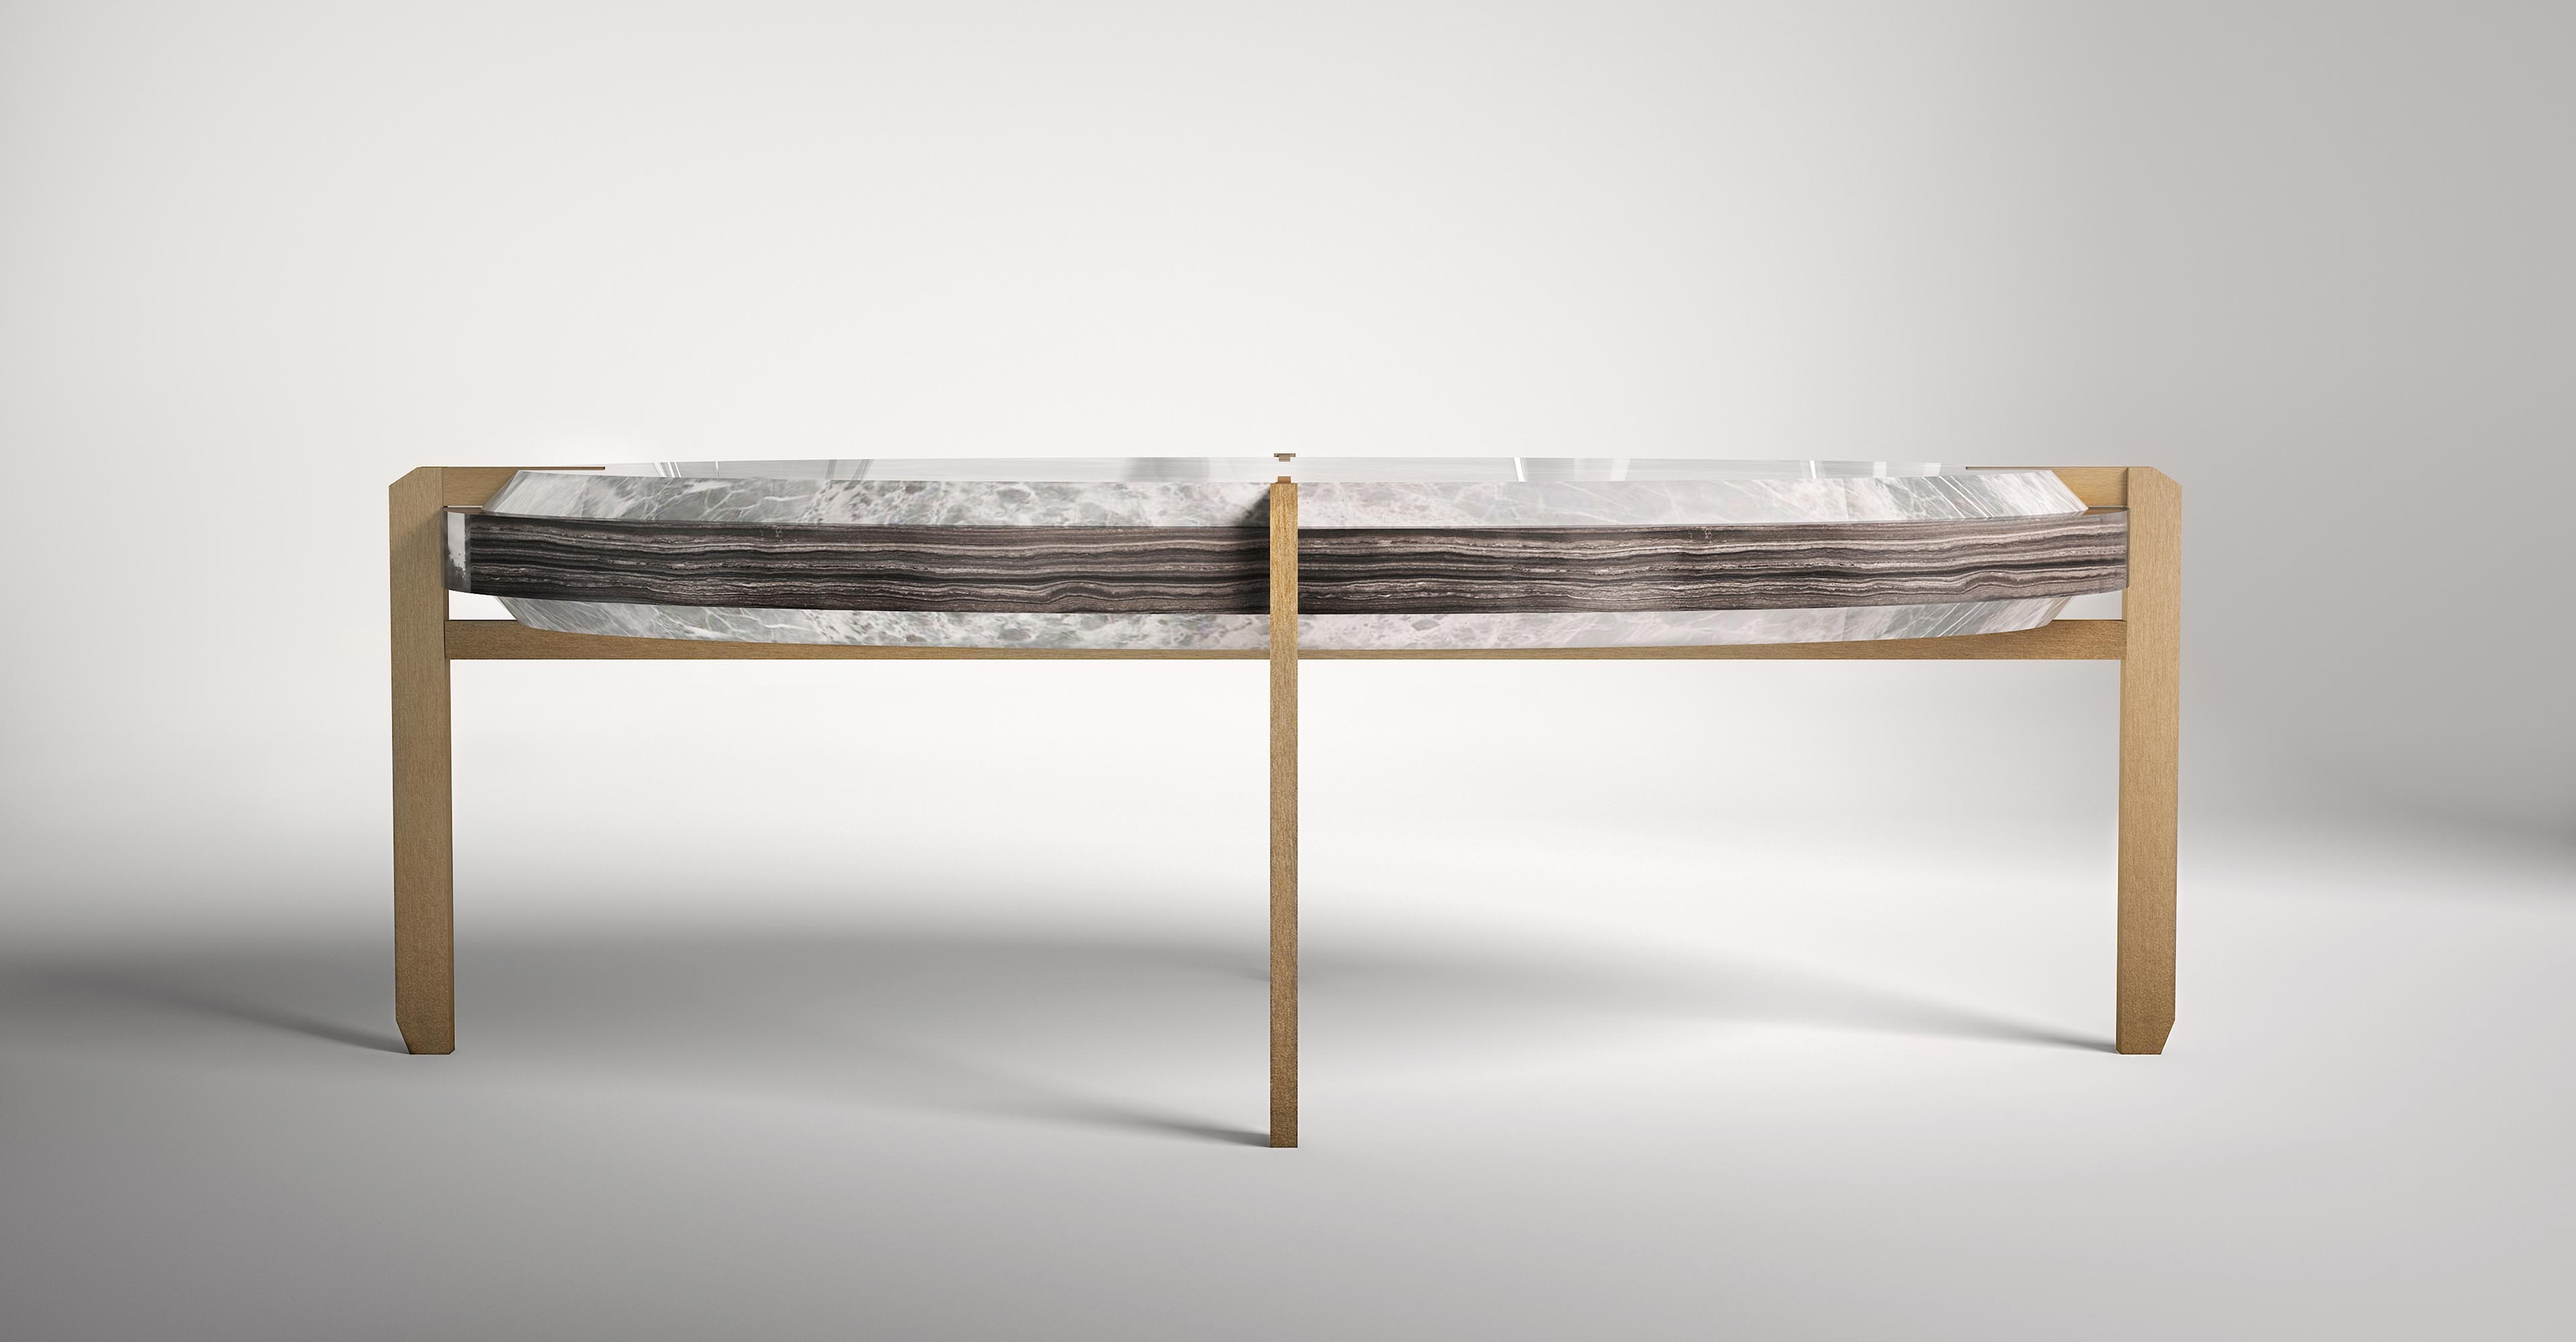 Soho - Small Table made in Italy by Rossato